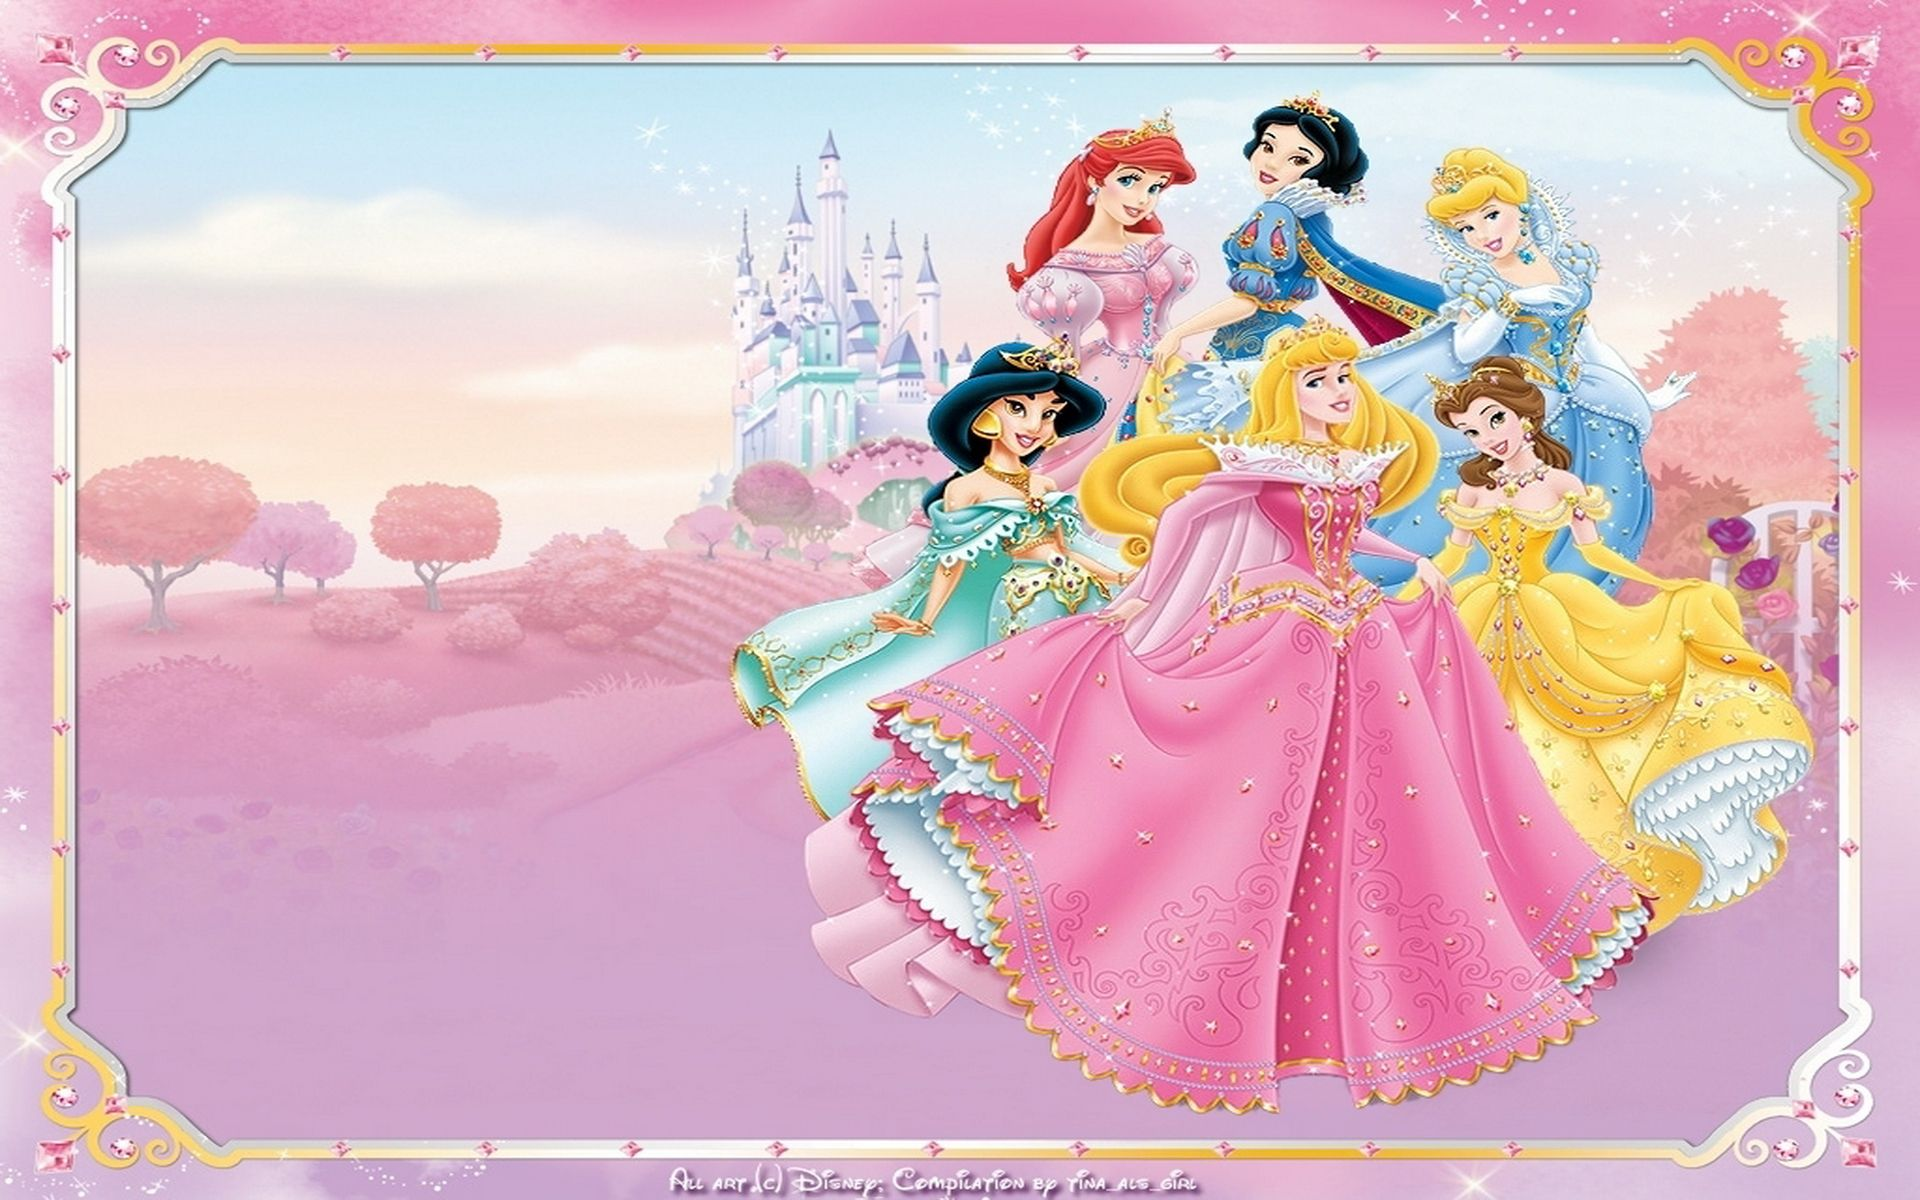 Disney Princess Wallpapers Disney princess wallpaper